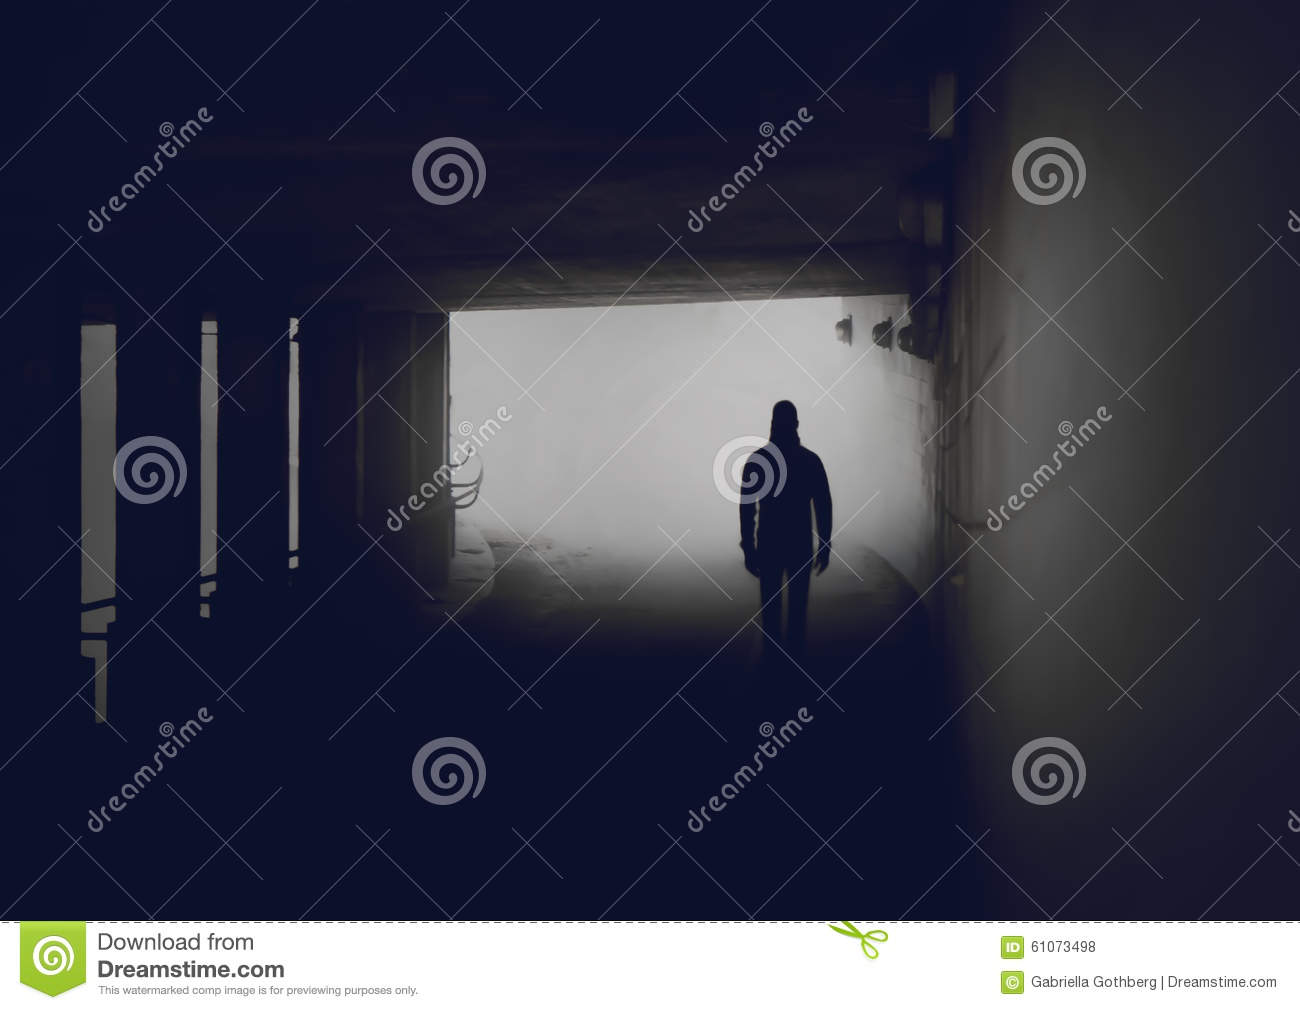 Silhouette of mysterious man in misty tunnel.